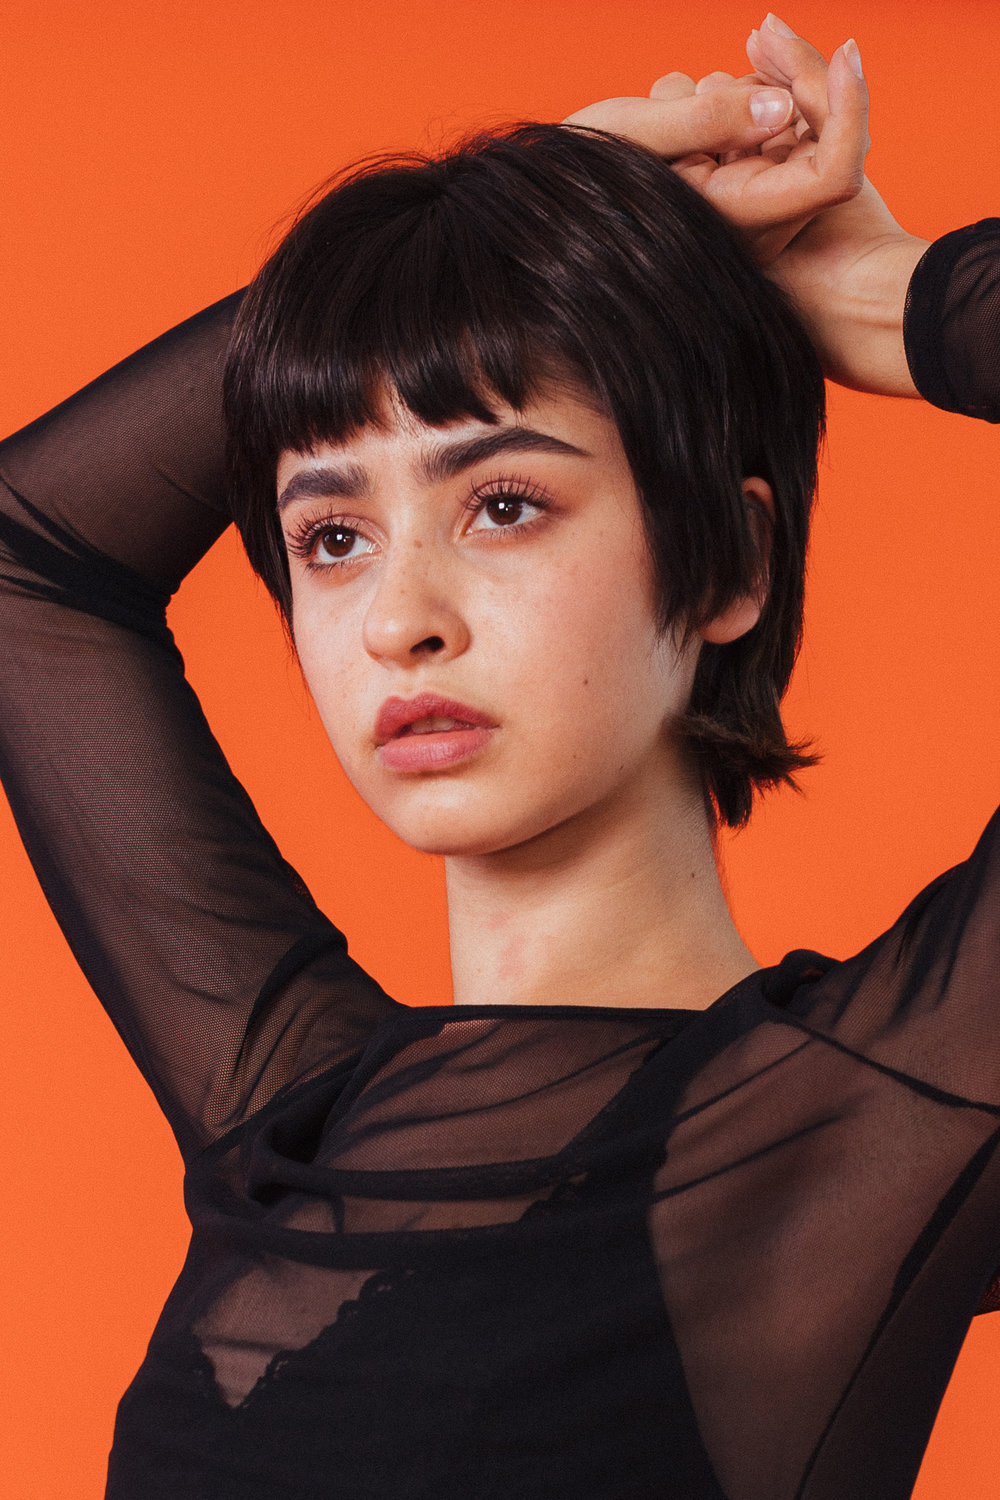 Valentina-Orange-16-casenruiz.jpg